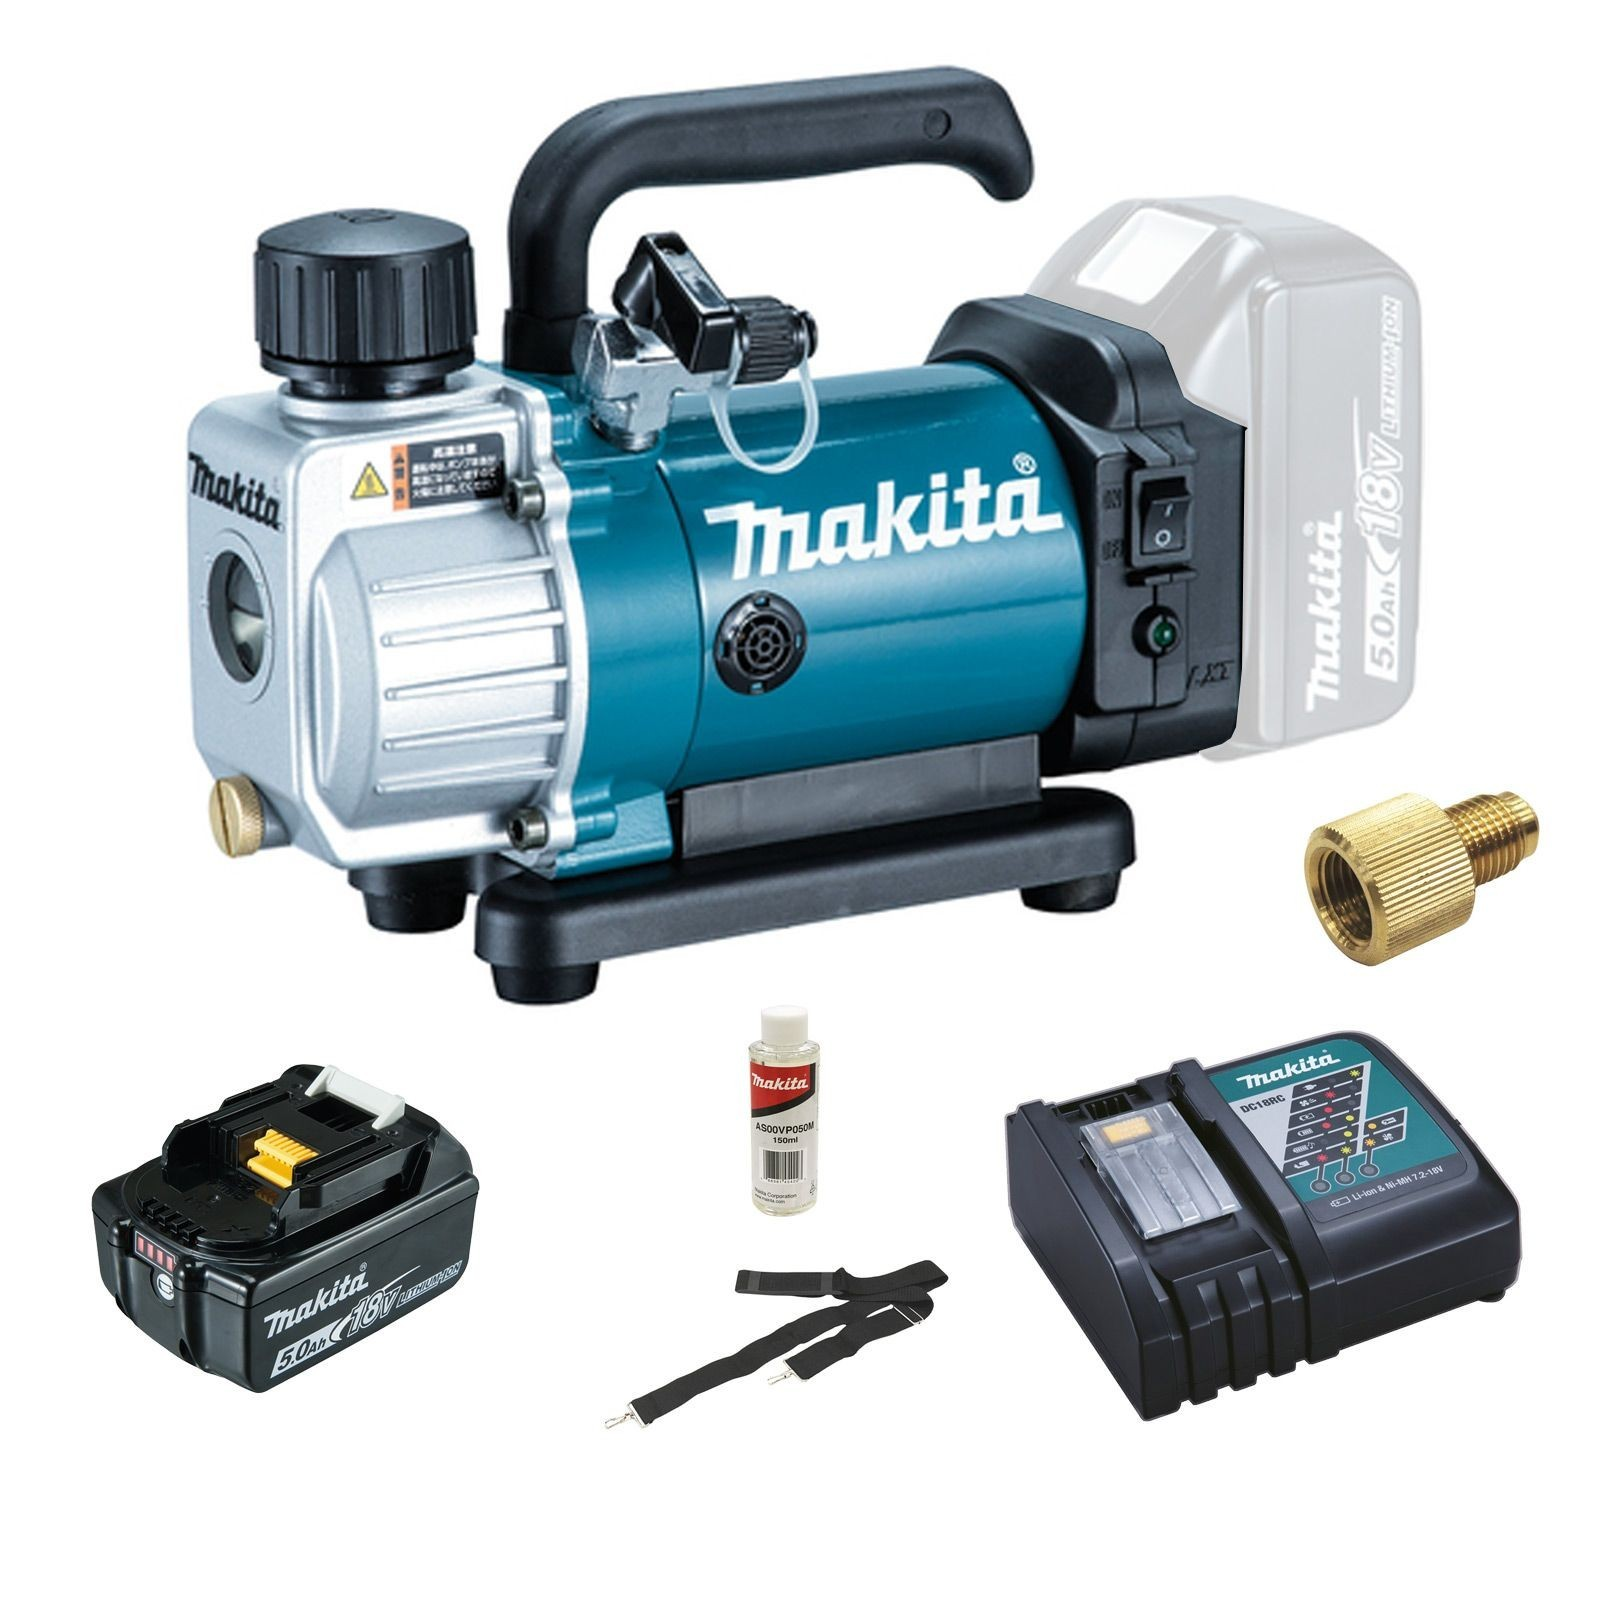 makita 18v cordless vacuum pump my power tools. Black Bedroom Furniture Sets. Home Design Ideas